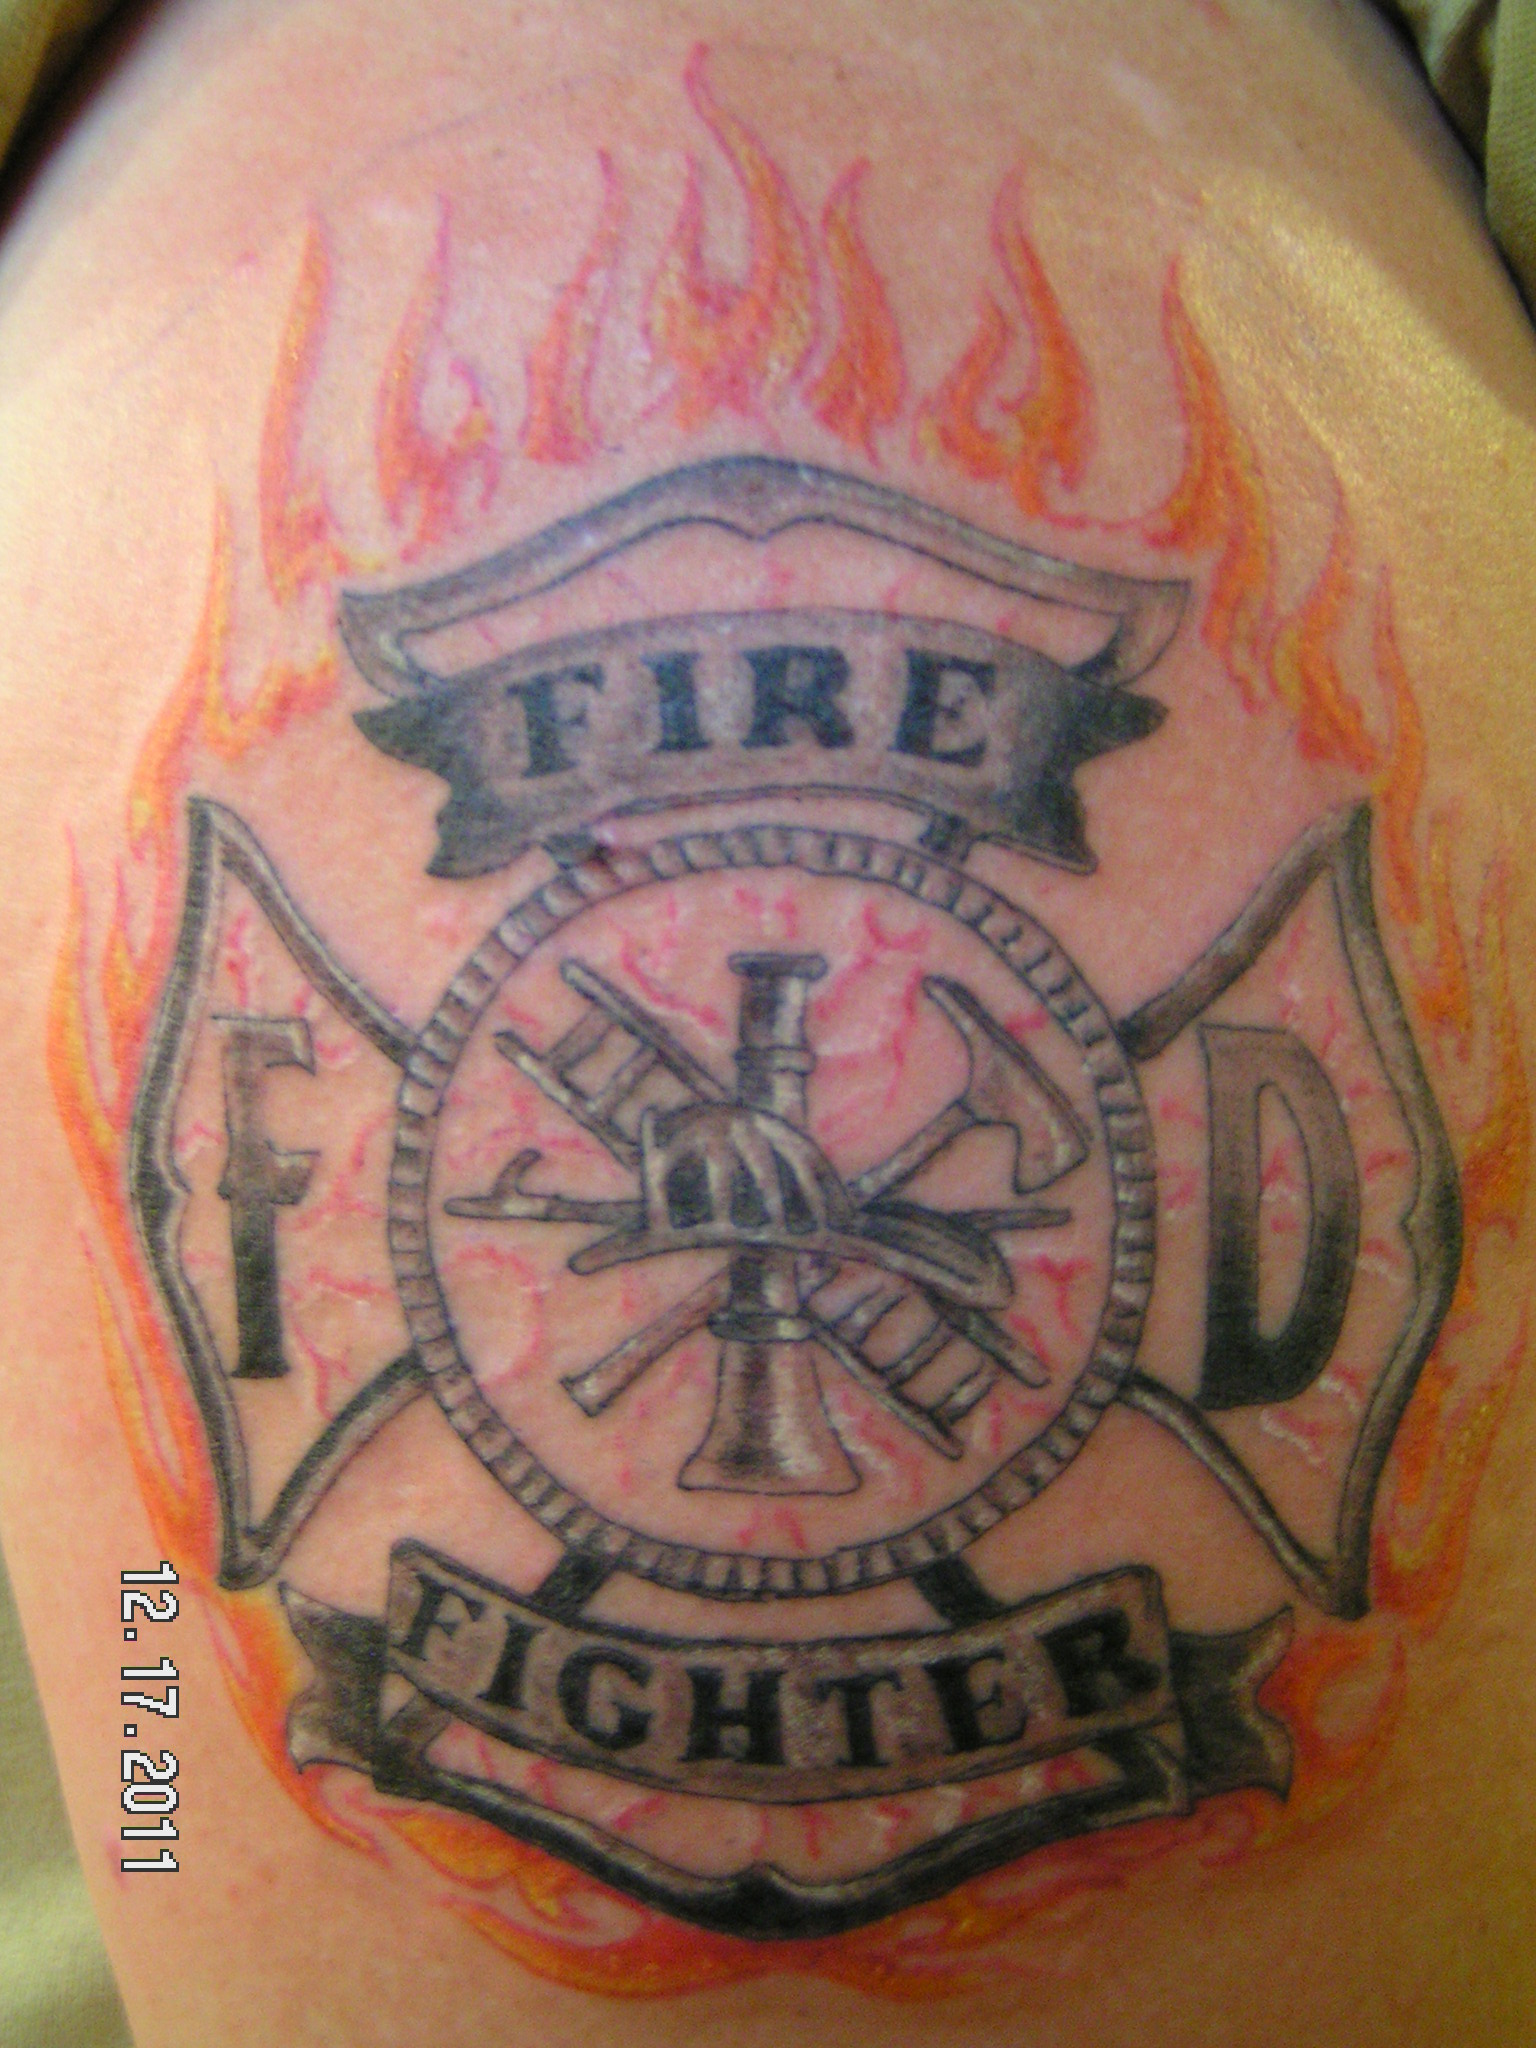 Pin army fire fighter tattoo on musclesjpg on pinterest